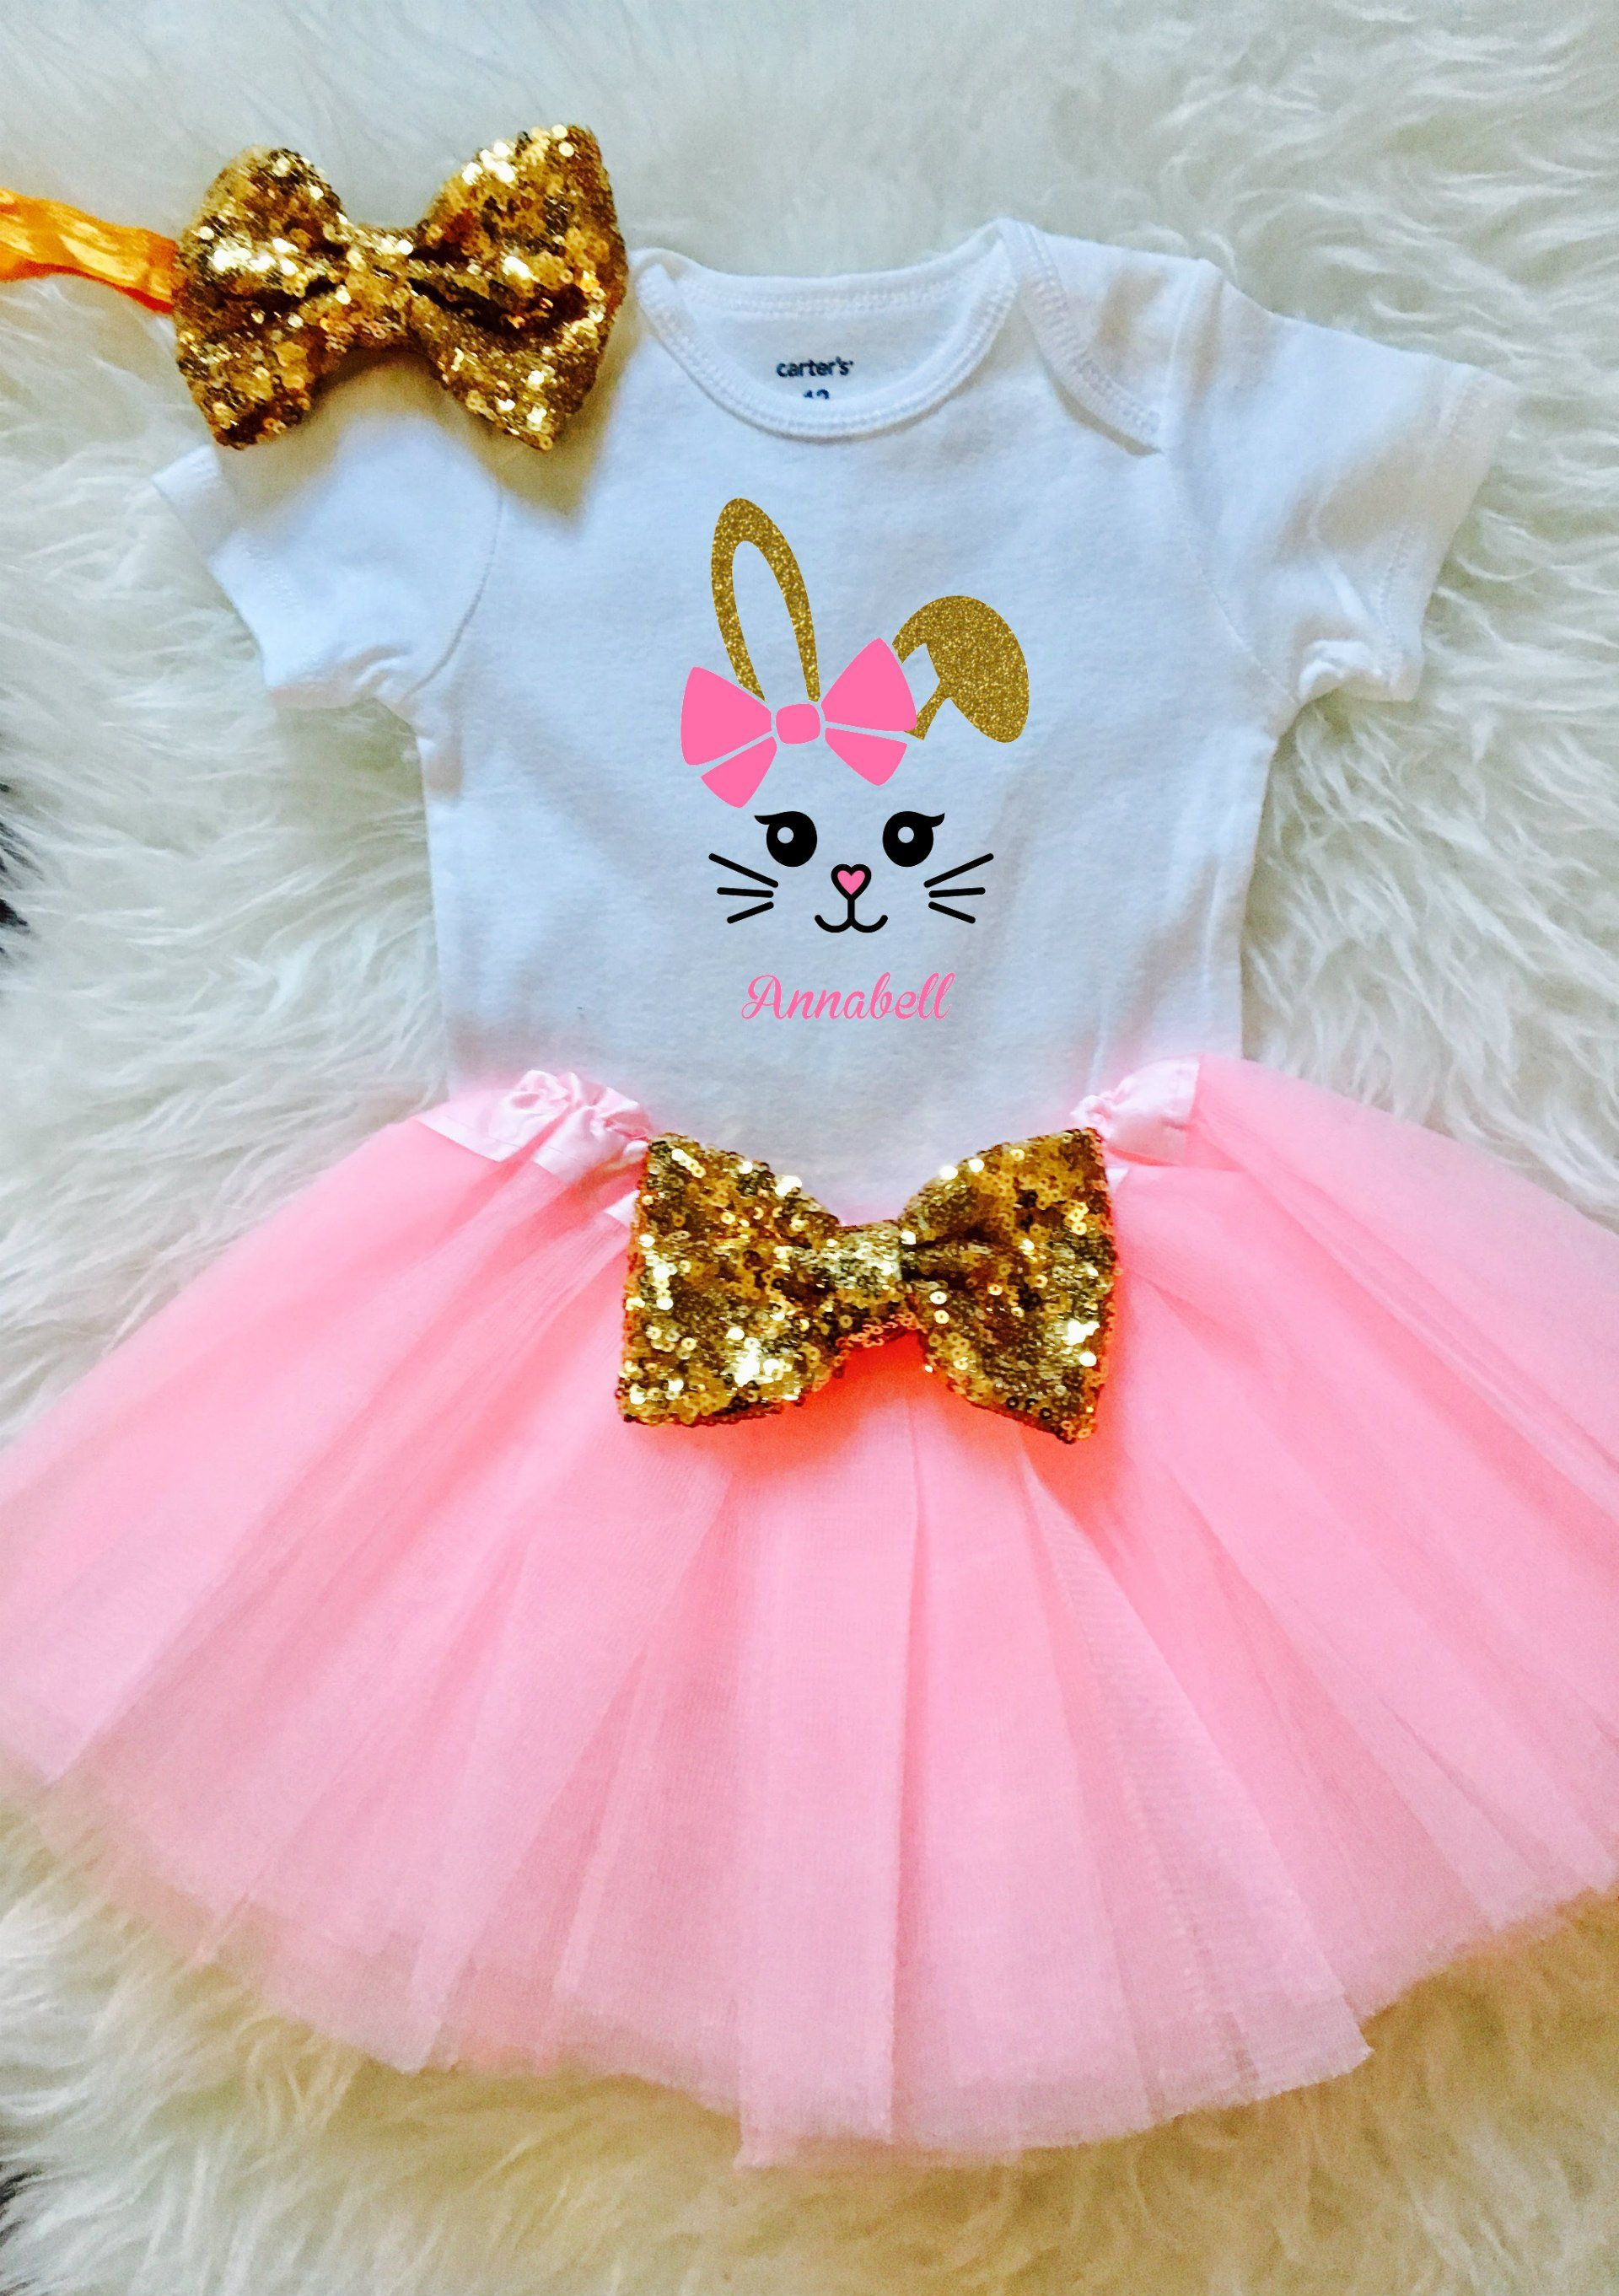 4899df9d6 Girls Easter Outfit Baby Girl Easter Outfit Easter Onesie First Easter  Outfit Baby's 1st Easter Tutu Baby Easter Dress Easter bunny t-shirt Get  this Cute ...